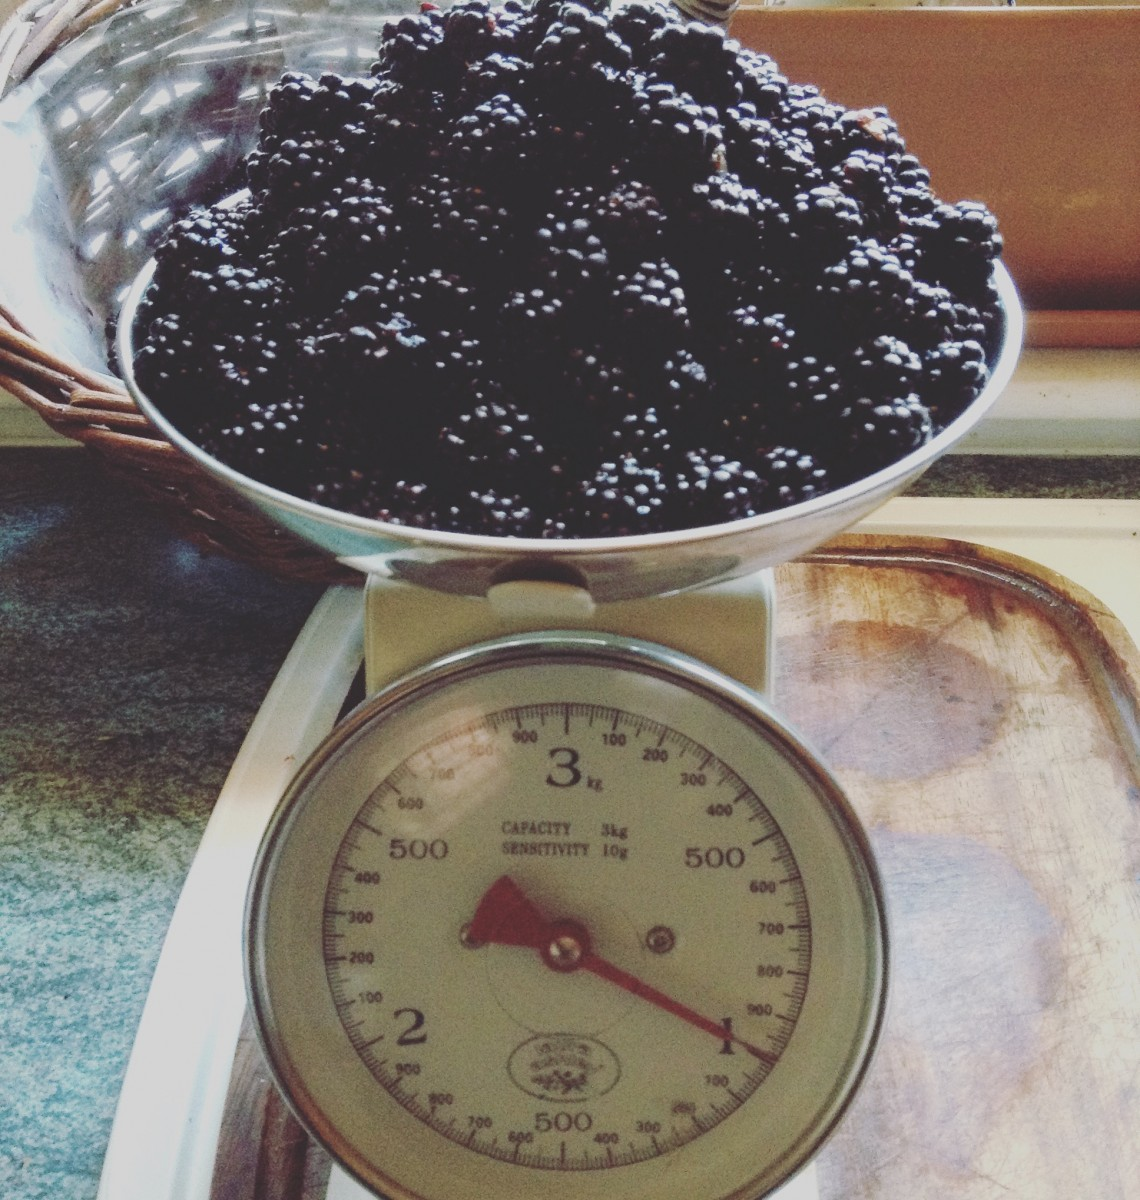 Weighing scales measuring 1kg of autumn wild brambles from a bush in Snook Field, Milne Graden. Harvest for Jenny's Wild Bramble & Sloe Gin Jelly recipe this autumn.